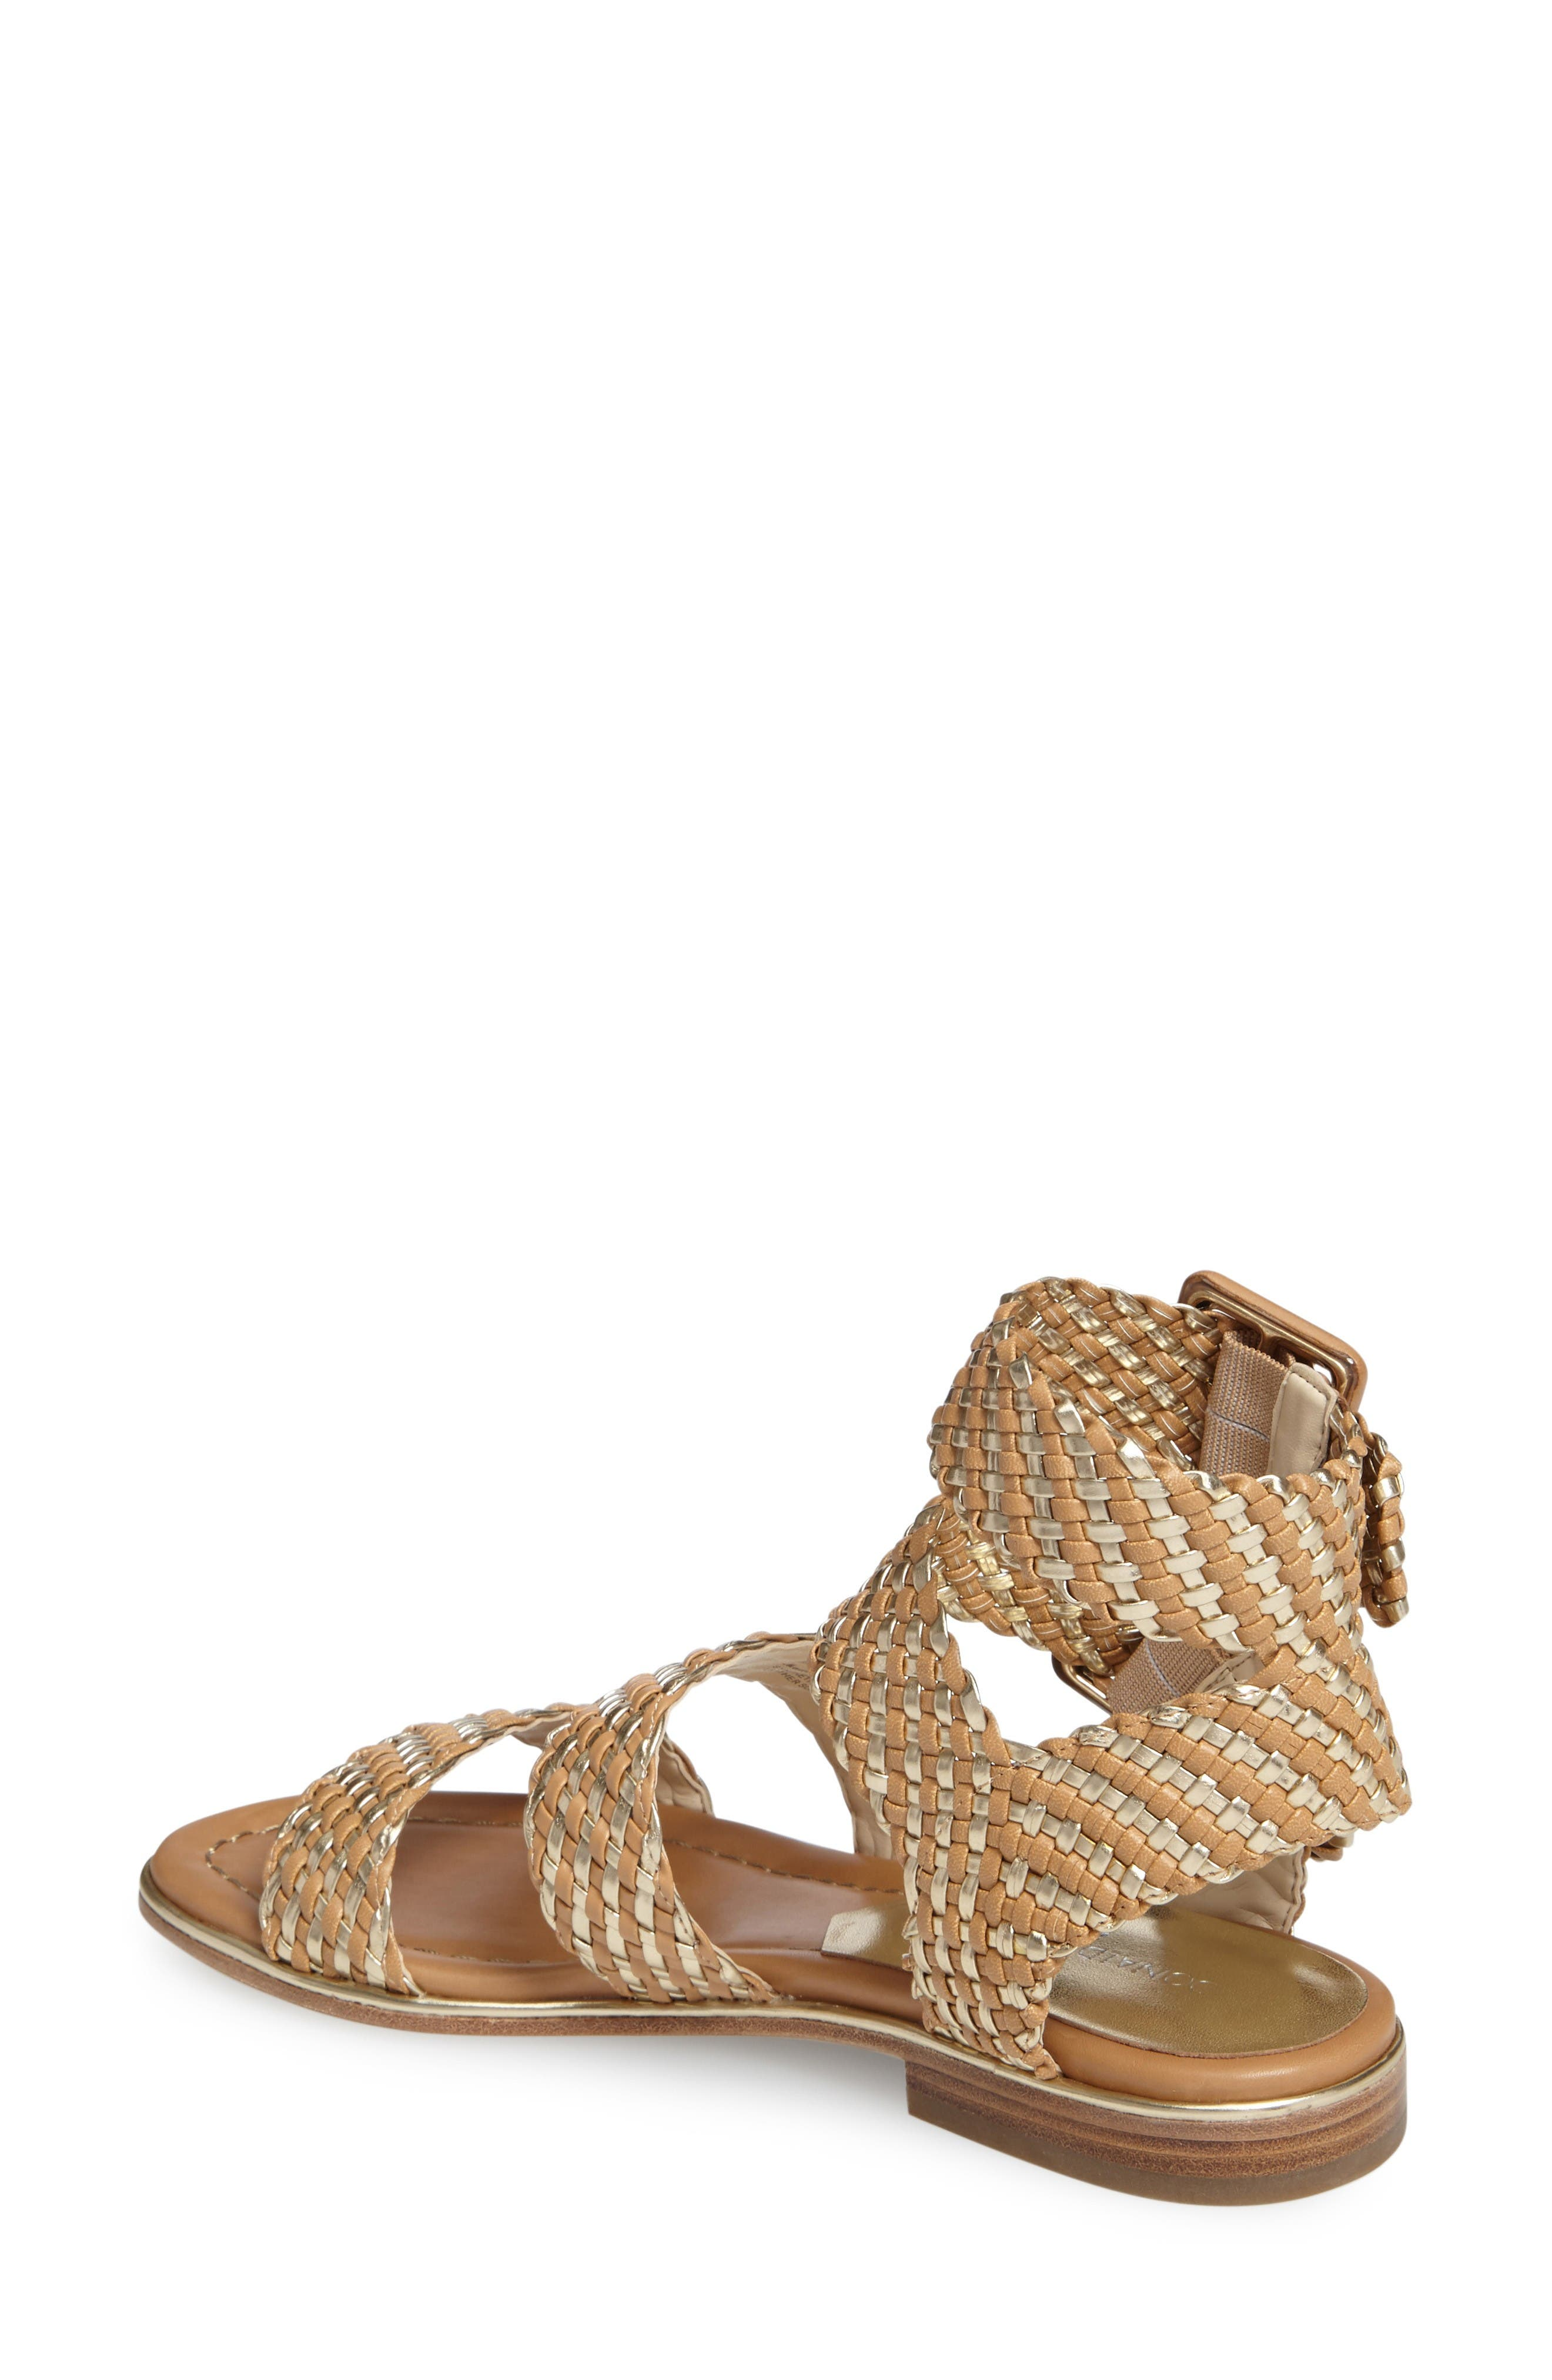 Donald J Pliner Lucia Braided Sandal,                             Alternate thumbnail 2, color,                             Sand/ Platino Faux Leather